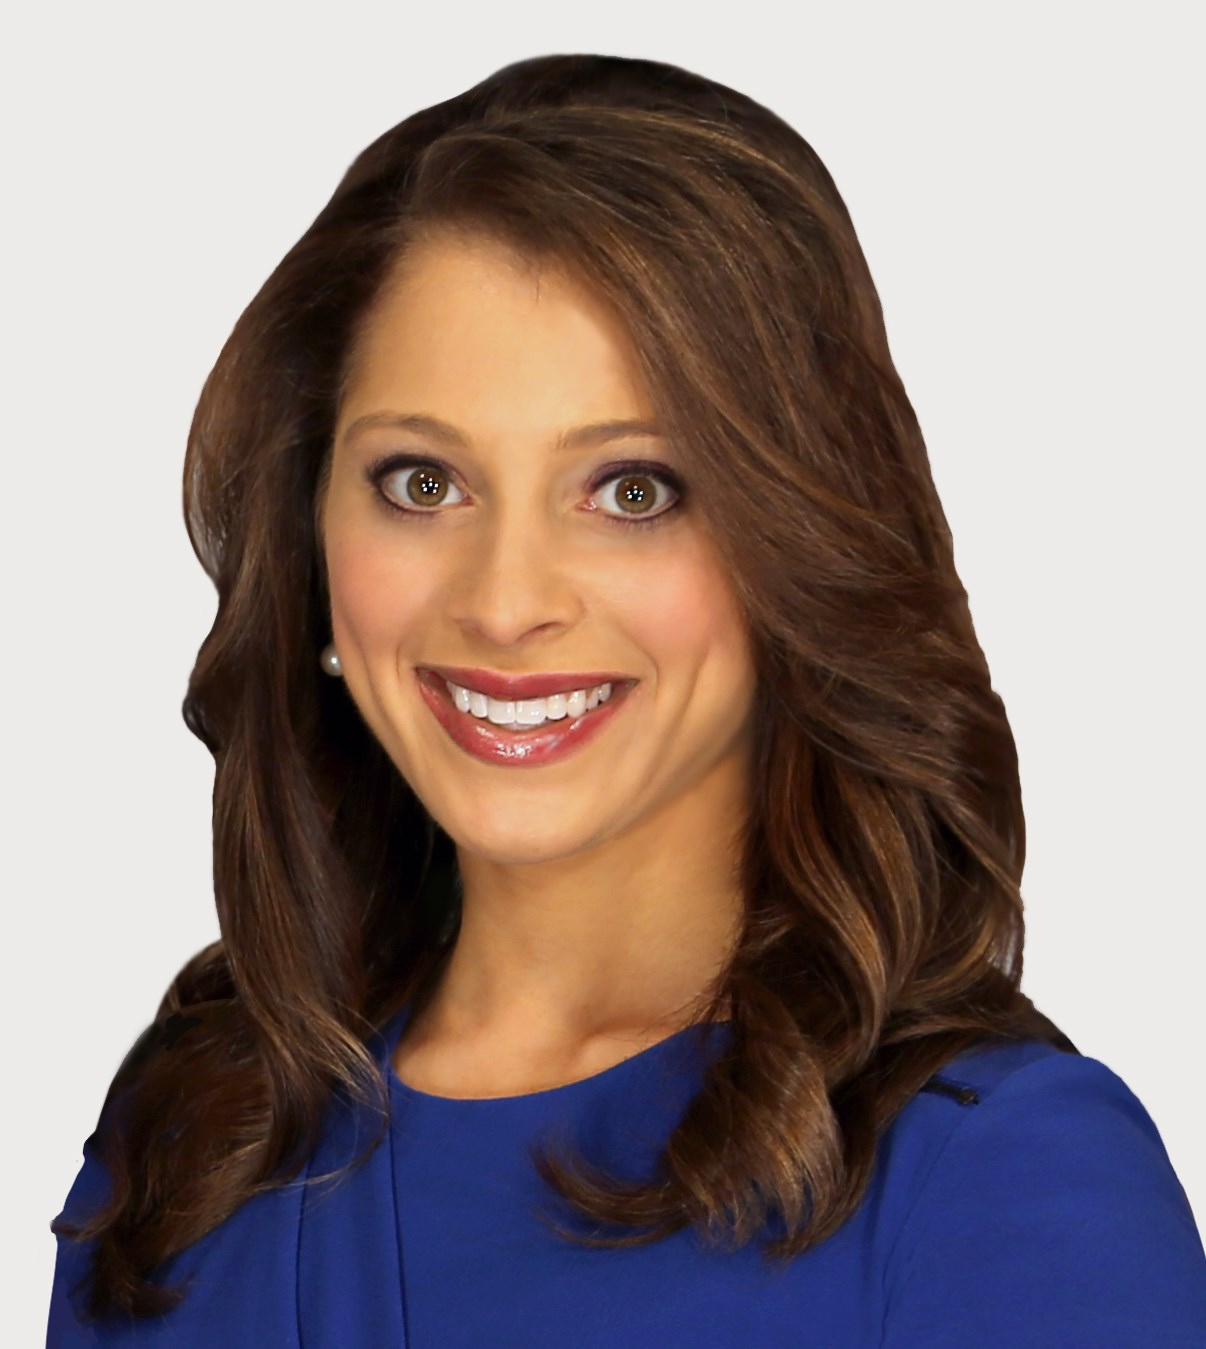 Bmw Of The Woodlands >> Meteorologist Lindsey Day to exit KRIV-TV Fox 26 Houston - Houston Chronicle